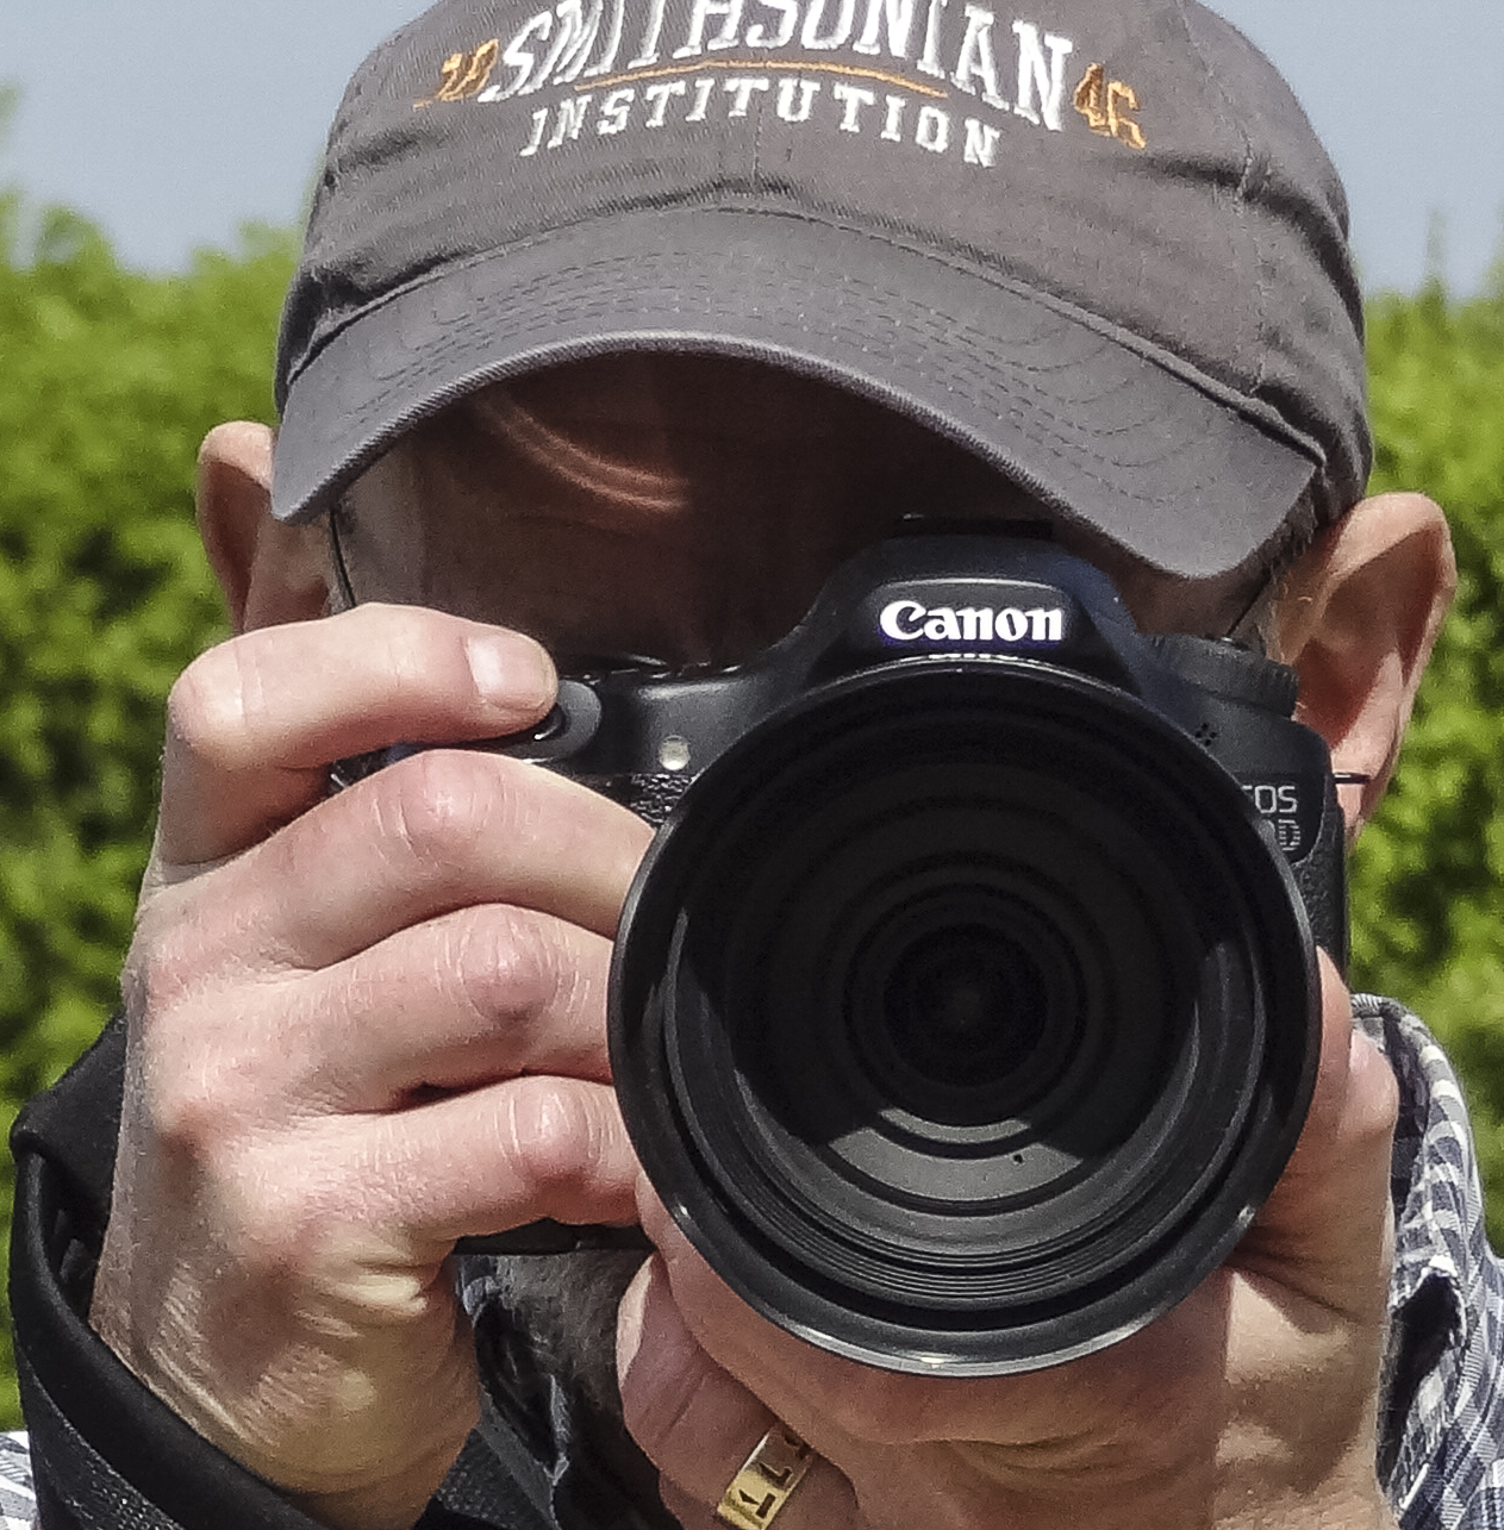 Dave with his trusty Canon 60D and the Sigma 24-105mm lens.